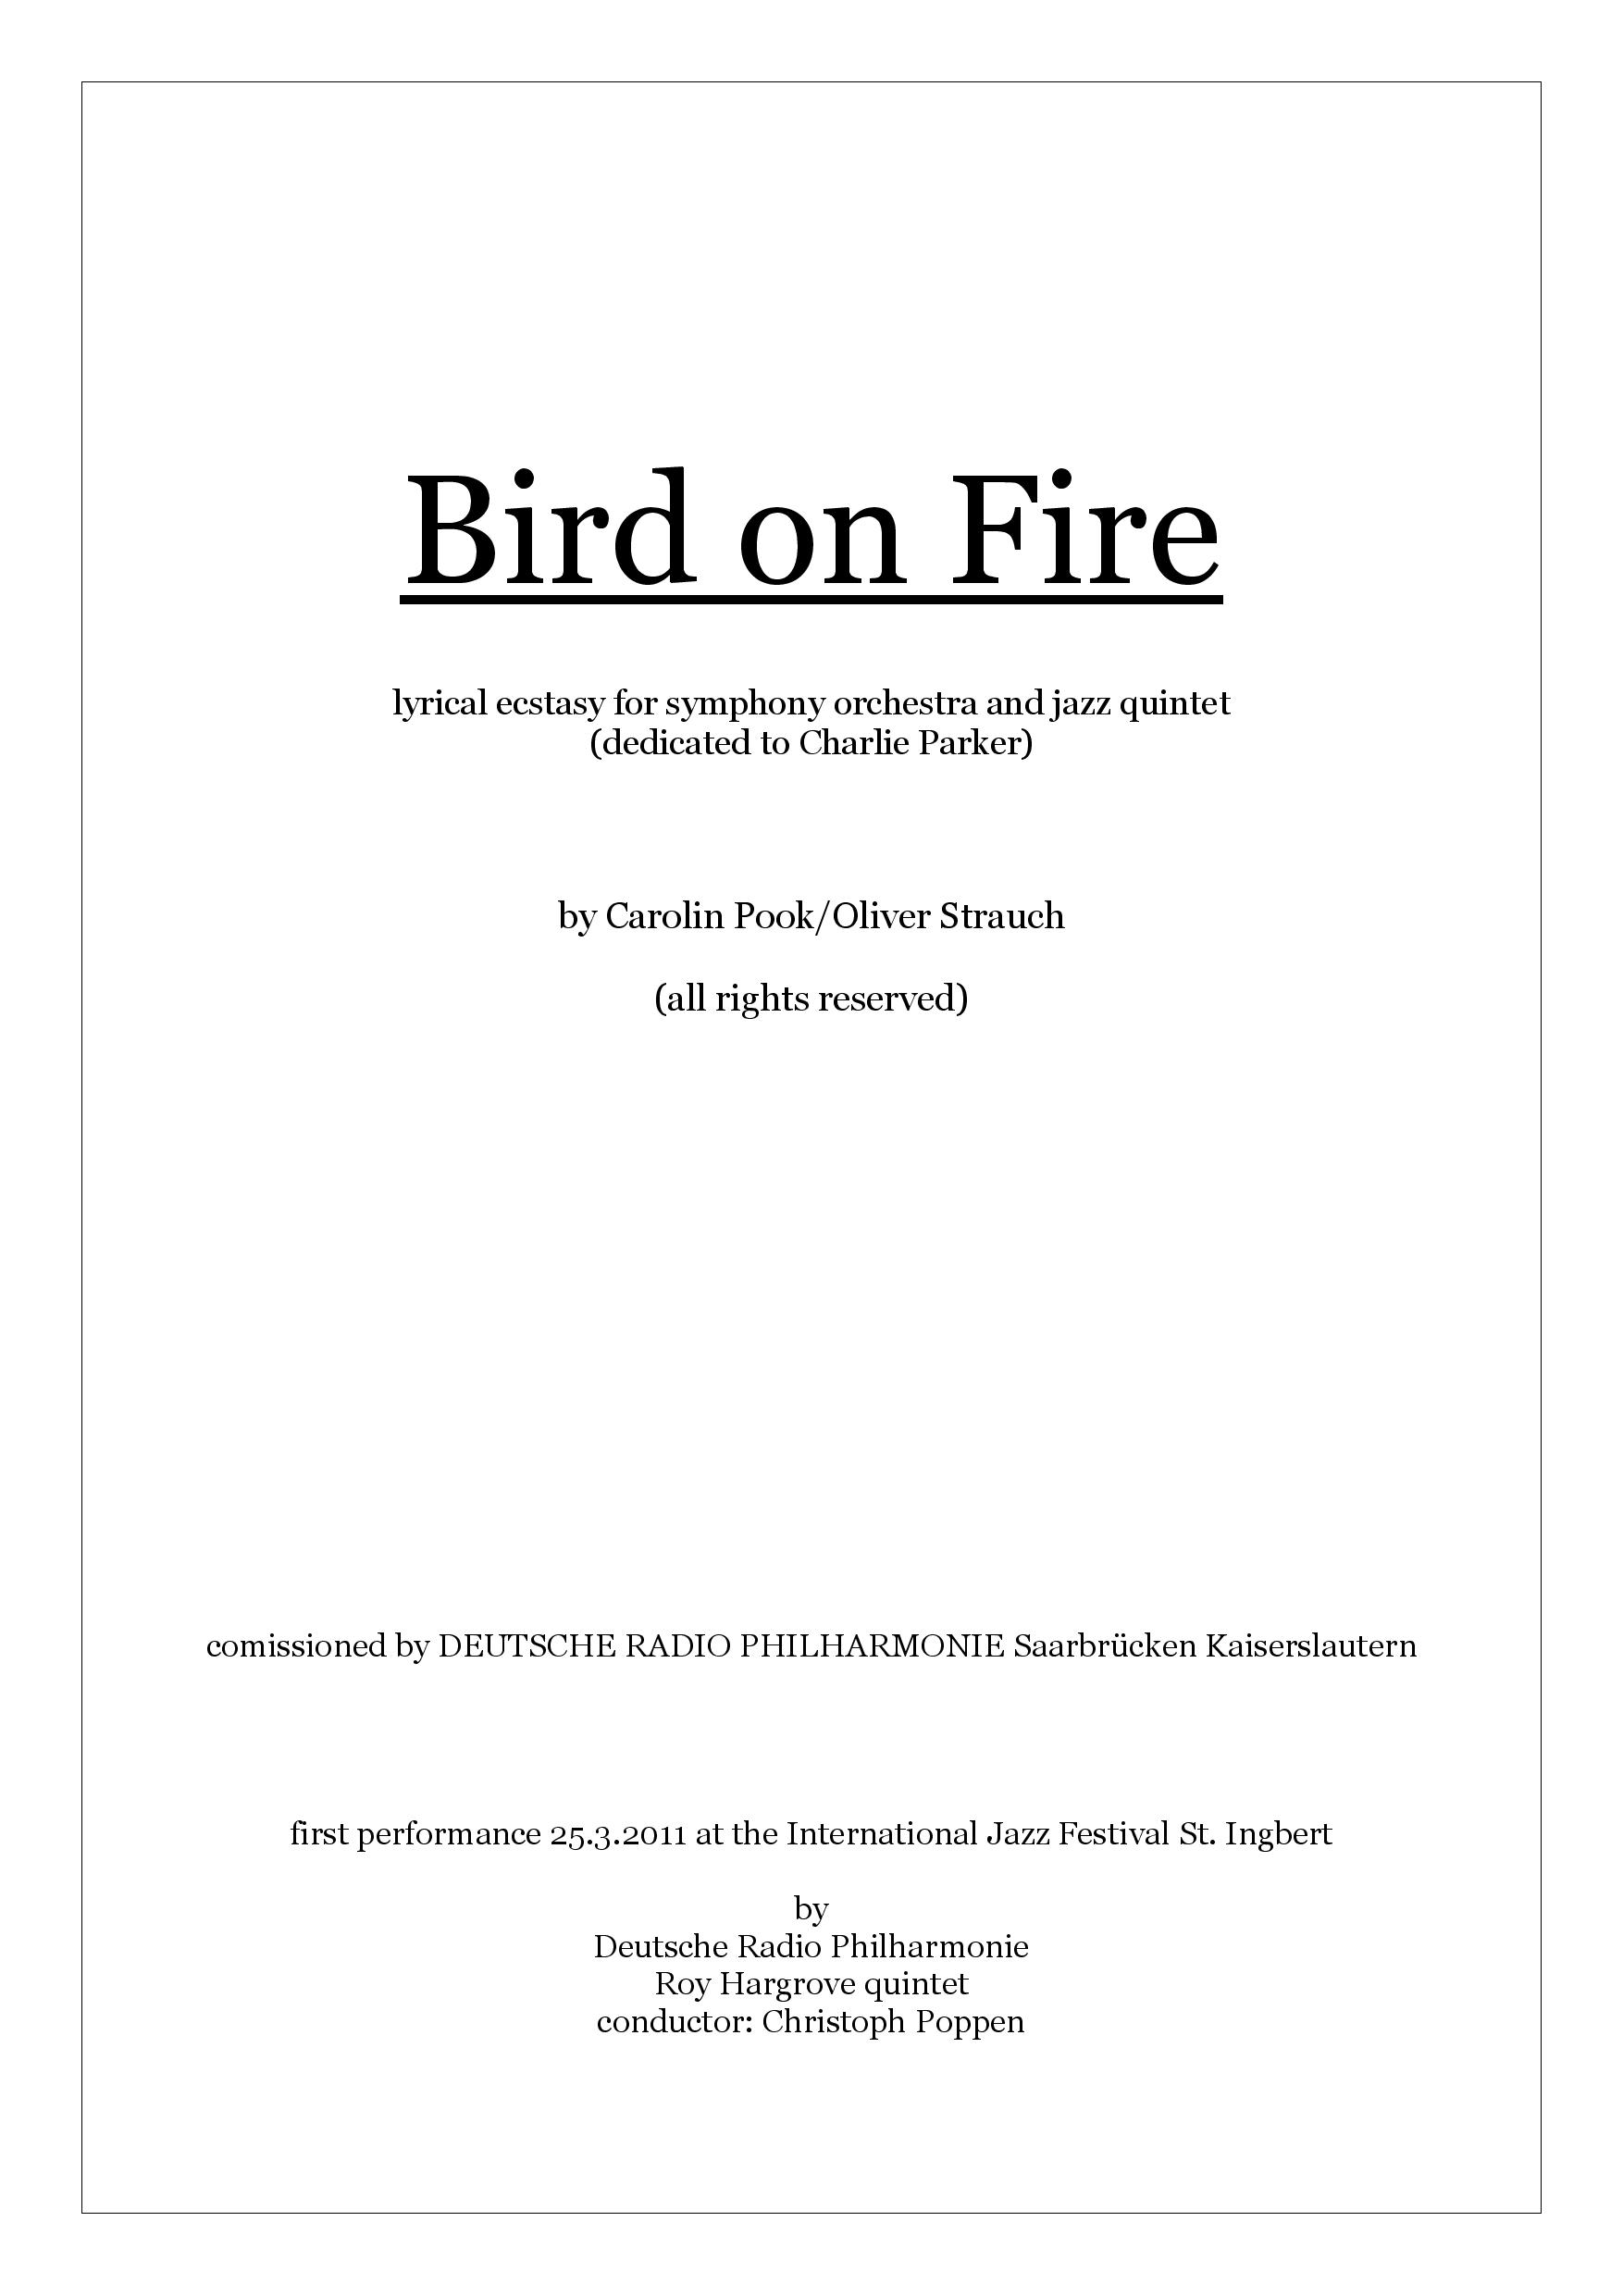 Bird on Fire - score-page-001.jpg